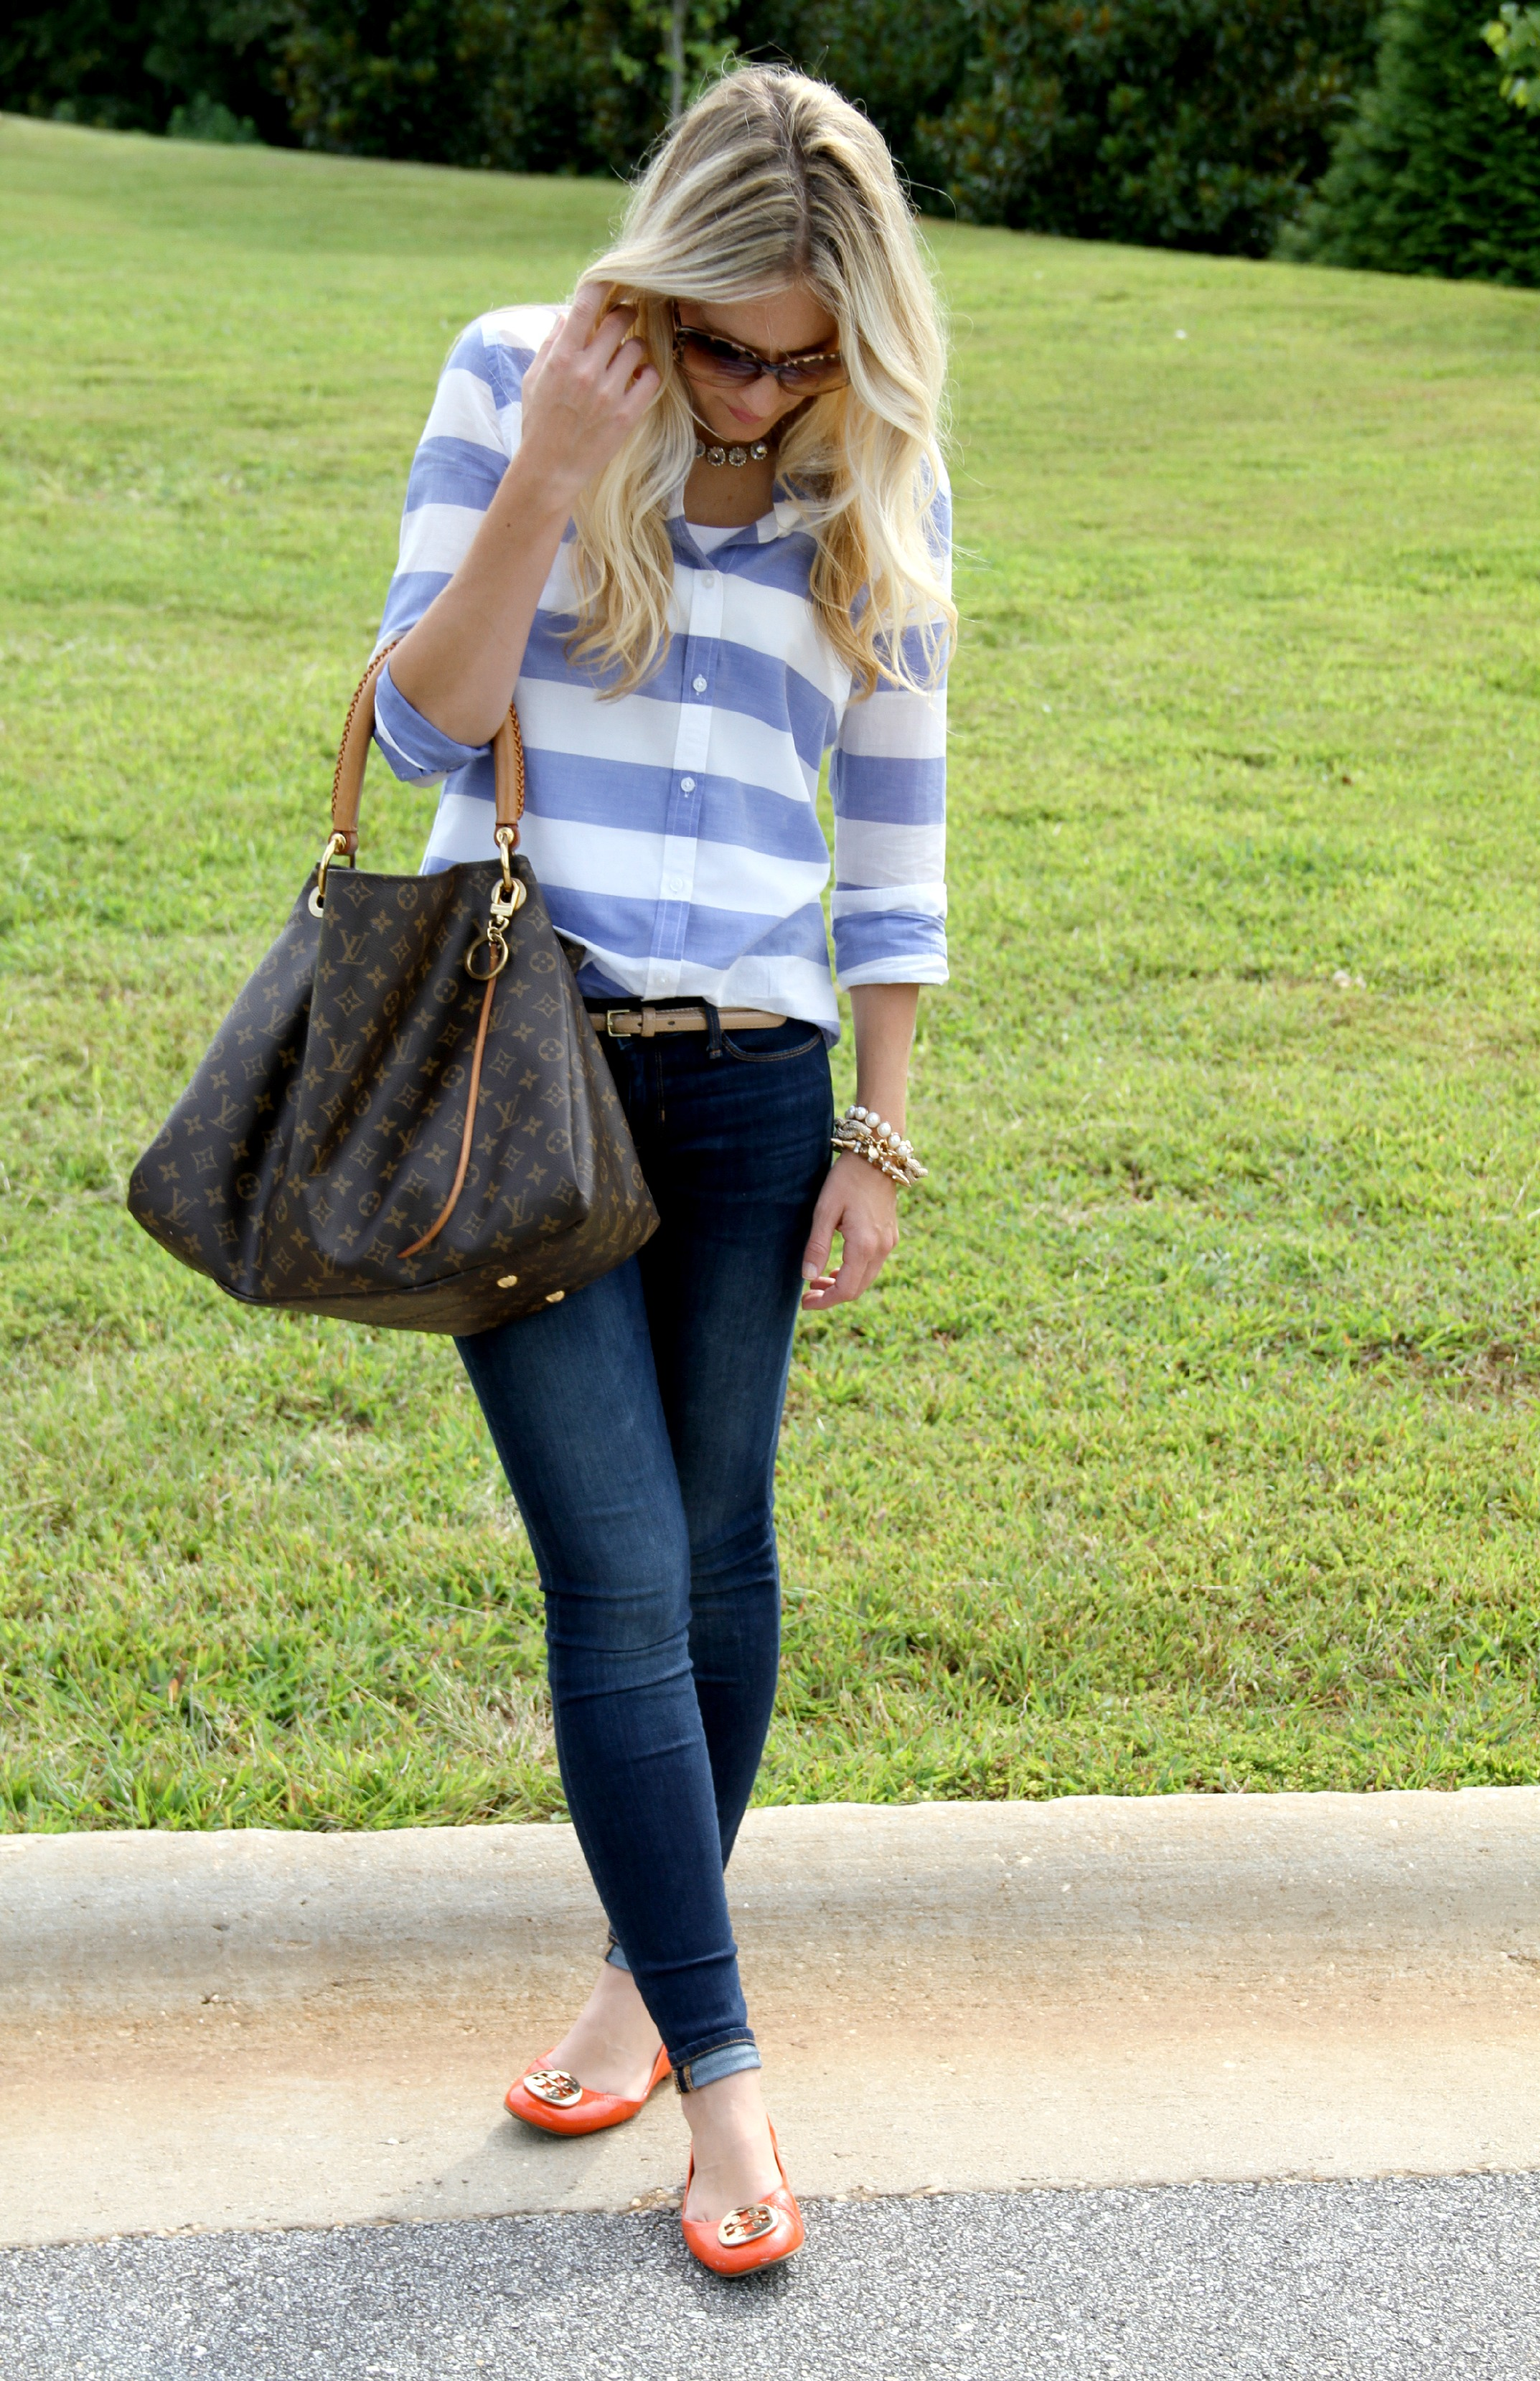 cb9d8e3f4ec7fa ... Skinny Jeans with Tory Burch Orange Reva Flats on CaliCrest.com ...